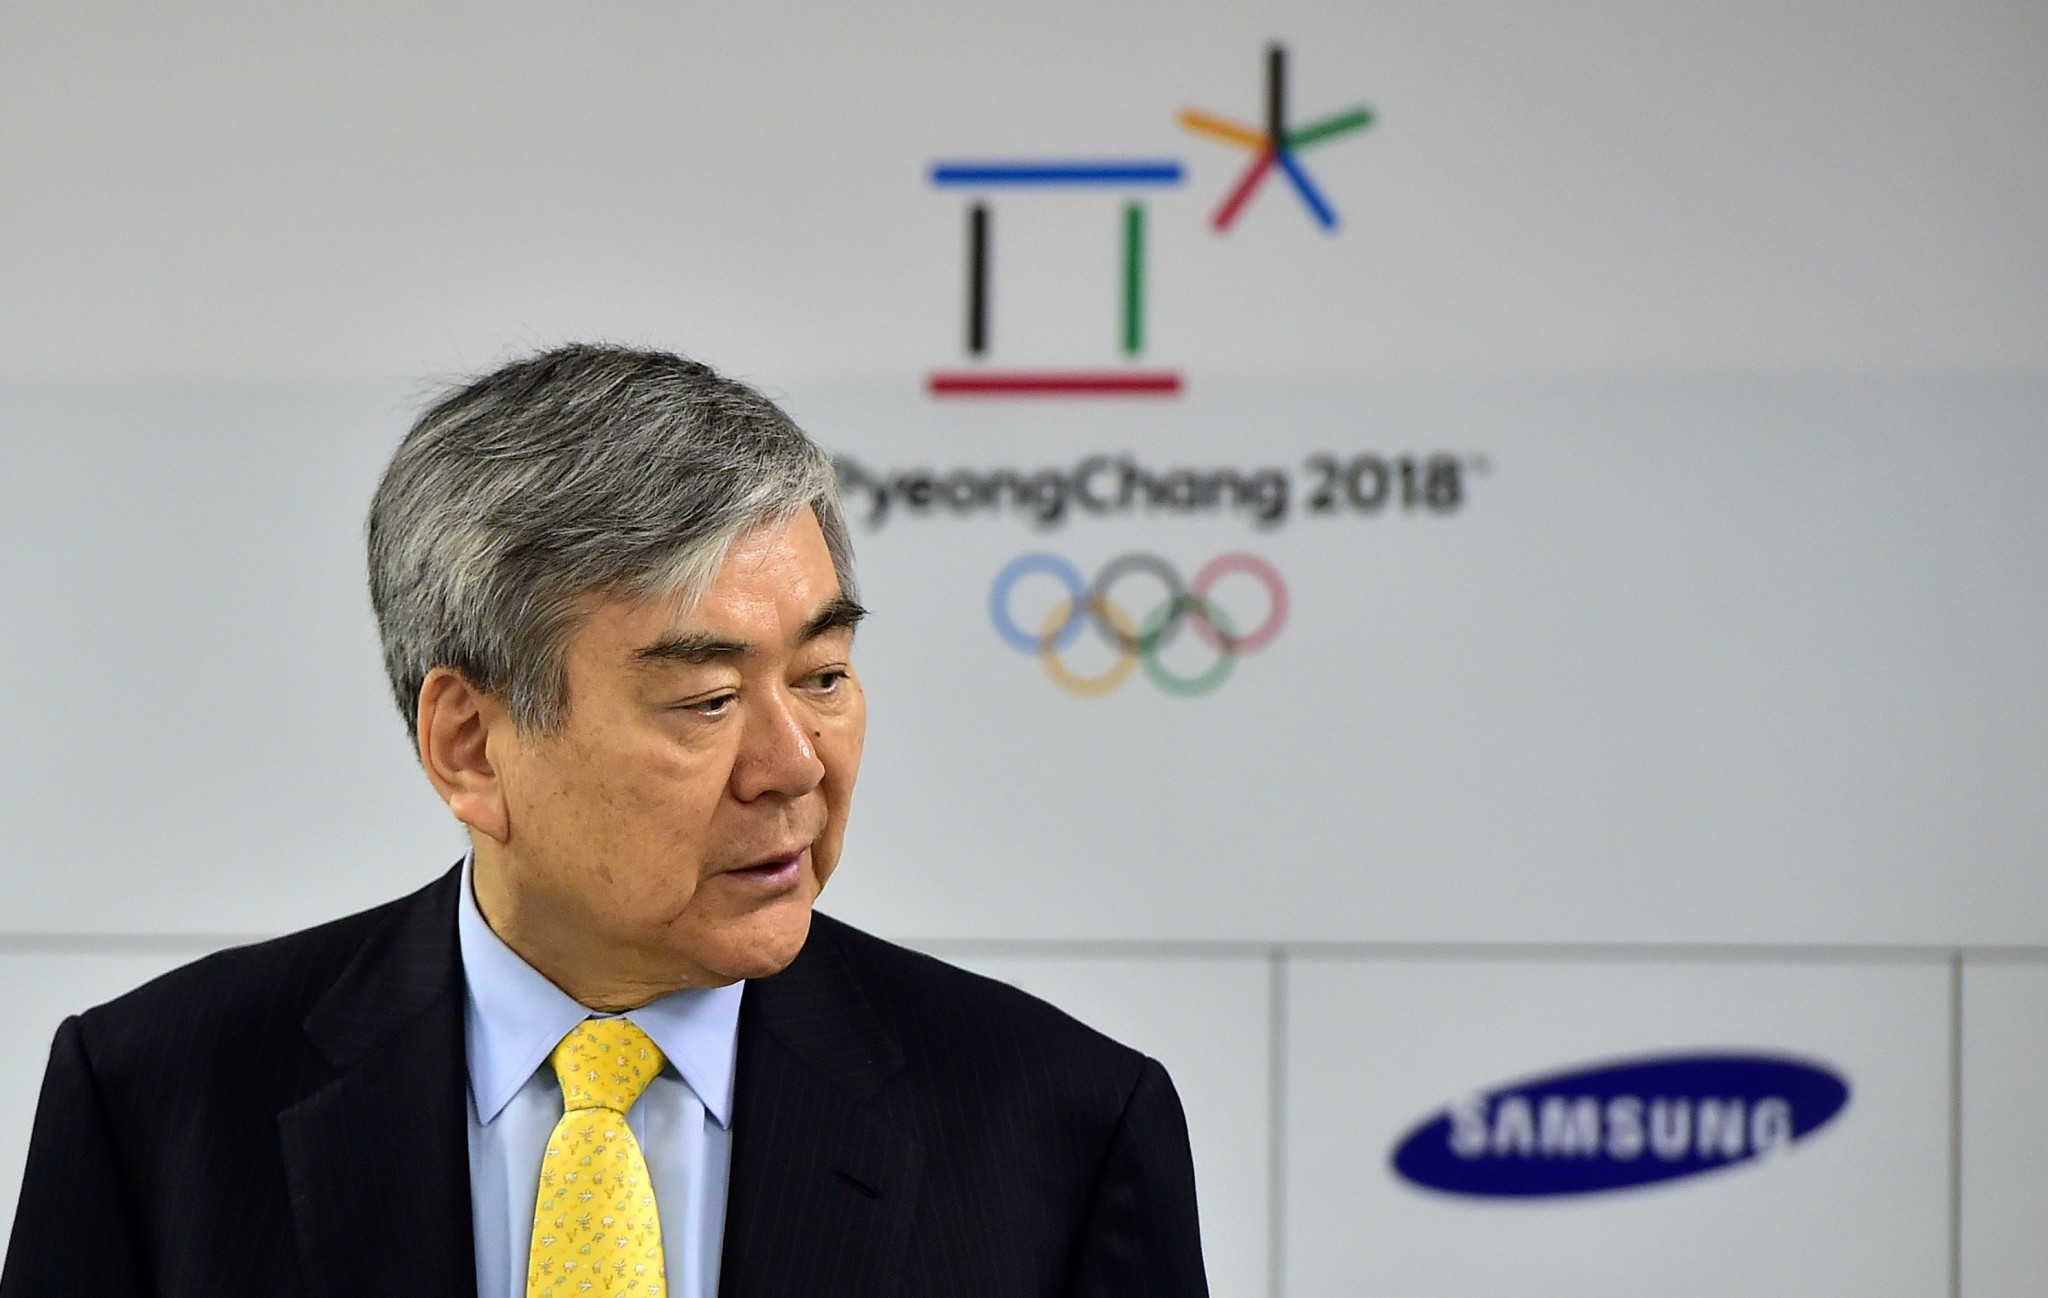 Cho Yang-Ho was forced out as President of Pyeongchang 2018 last year by Vice Sports Minister Kim Chong ©Getty Images